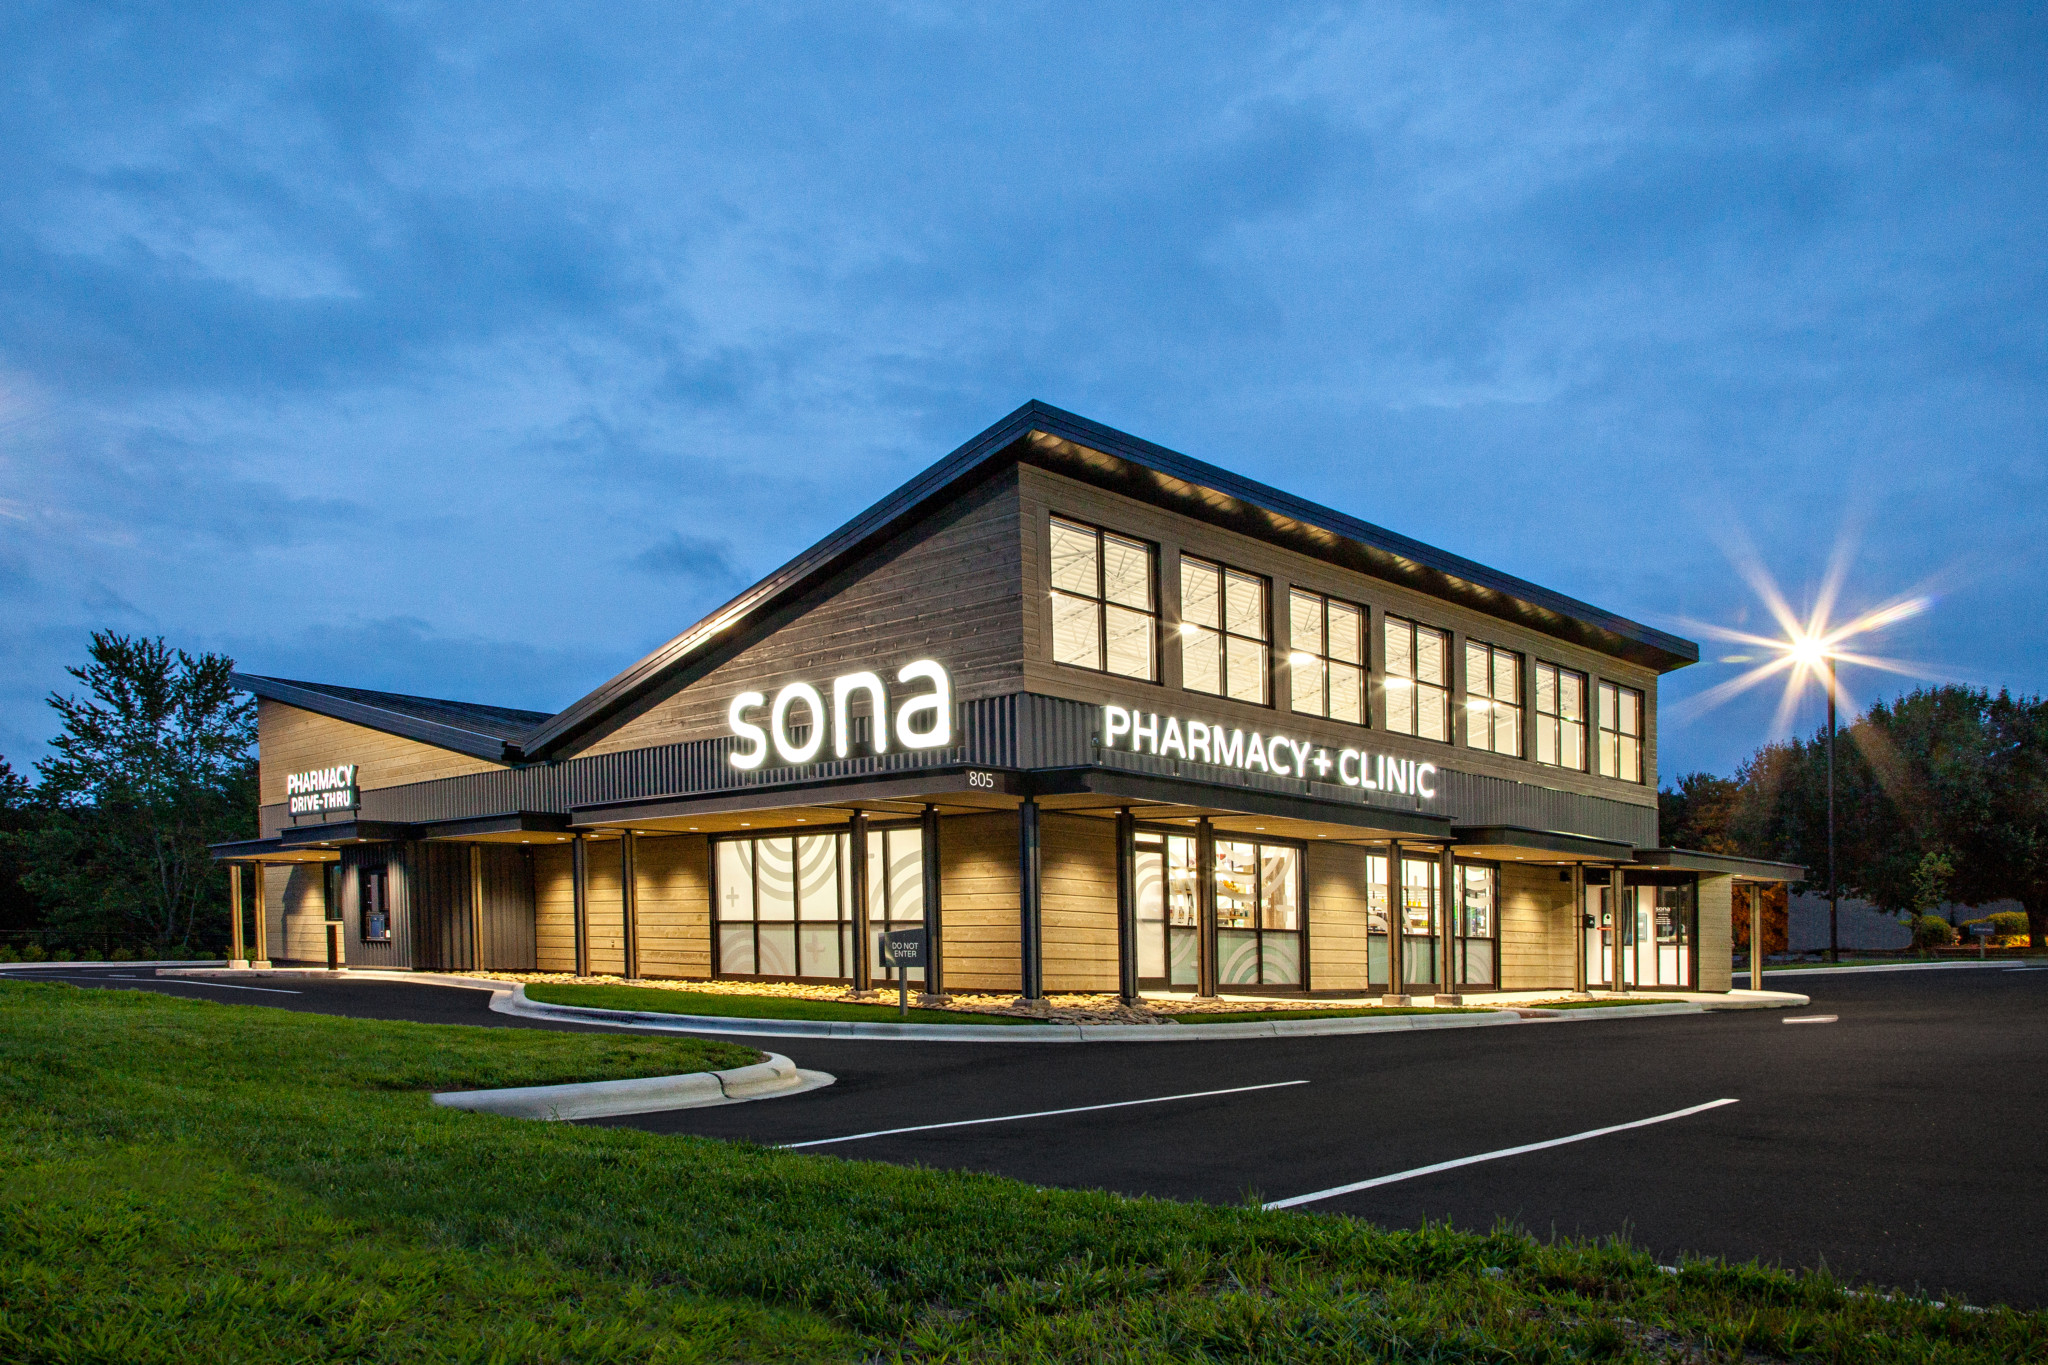 SONA Pharmacy + Clinic